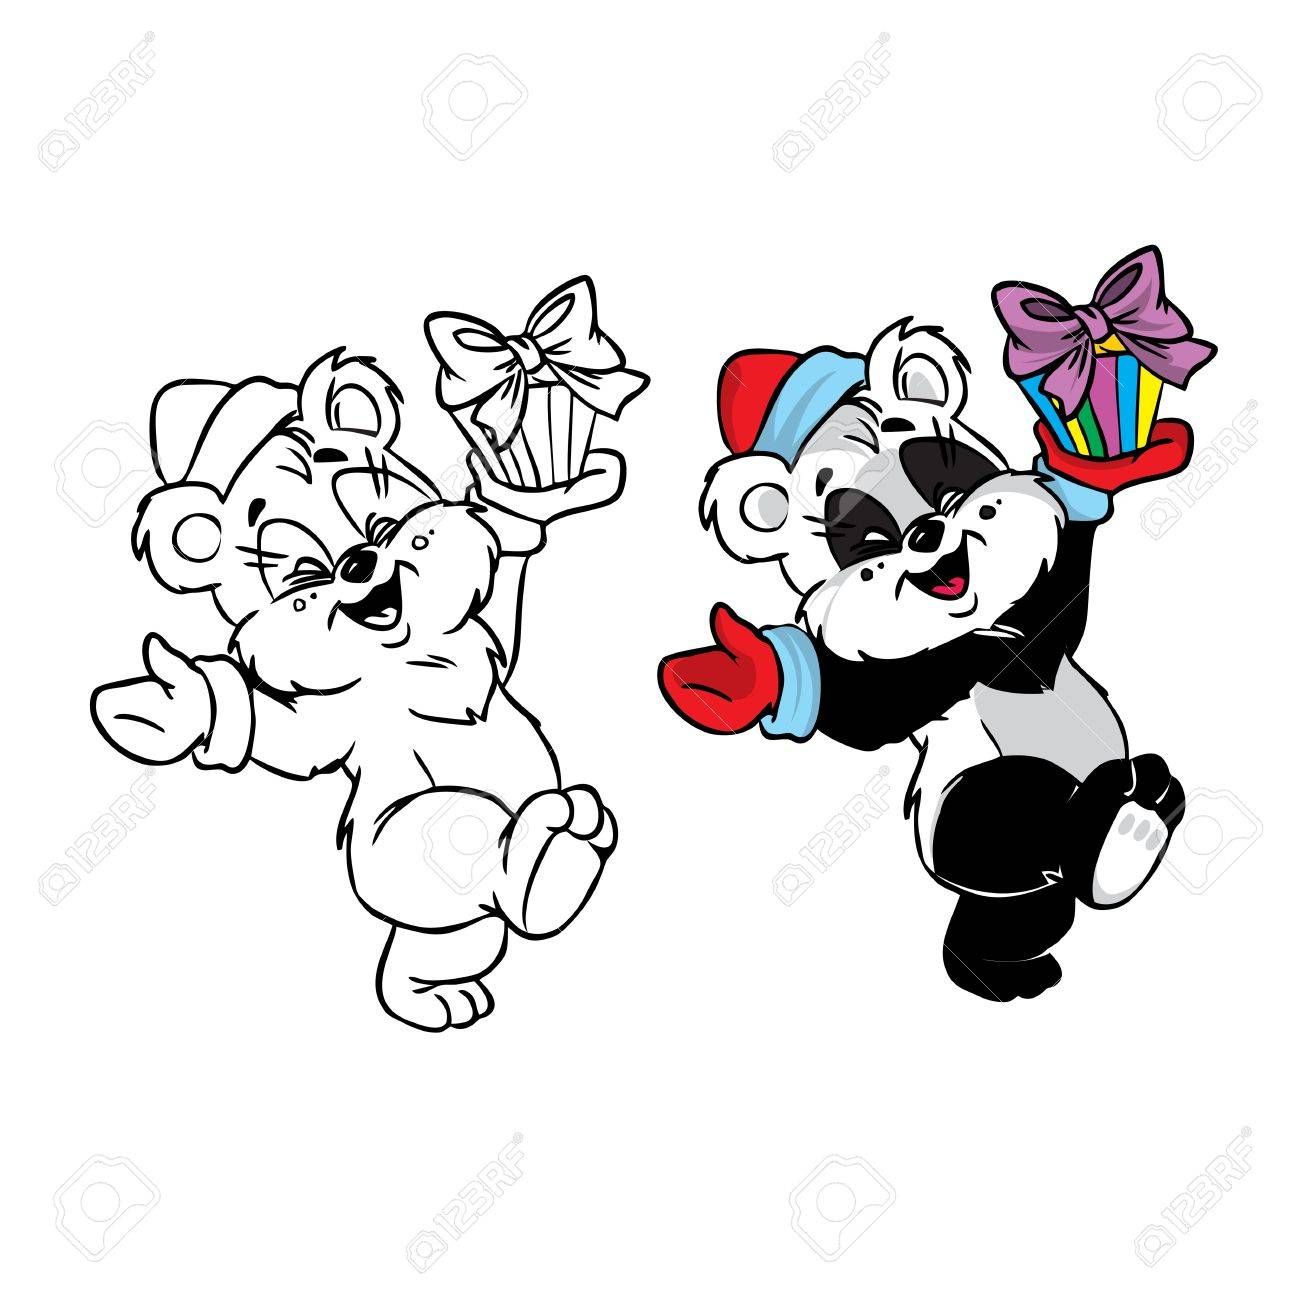 Vector Illustration of happy Christmas panda bear in color and black and white; isolated on background. Stock Vector - 11185516